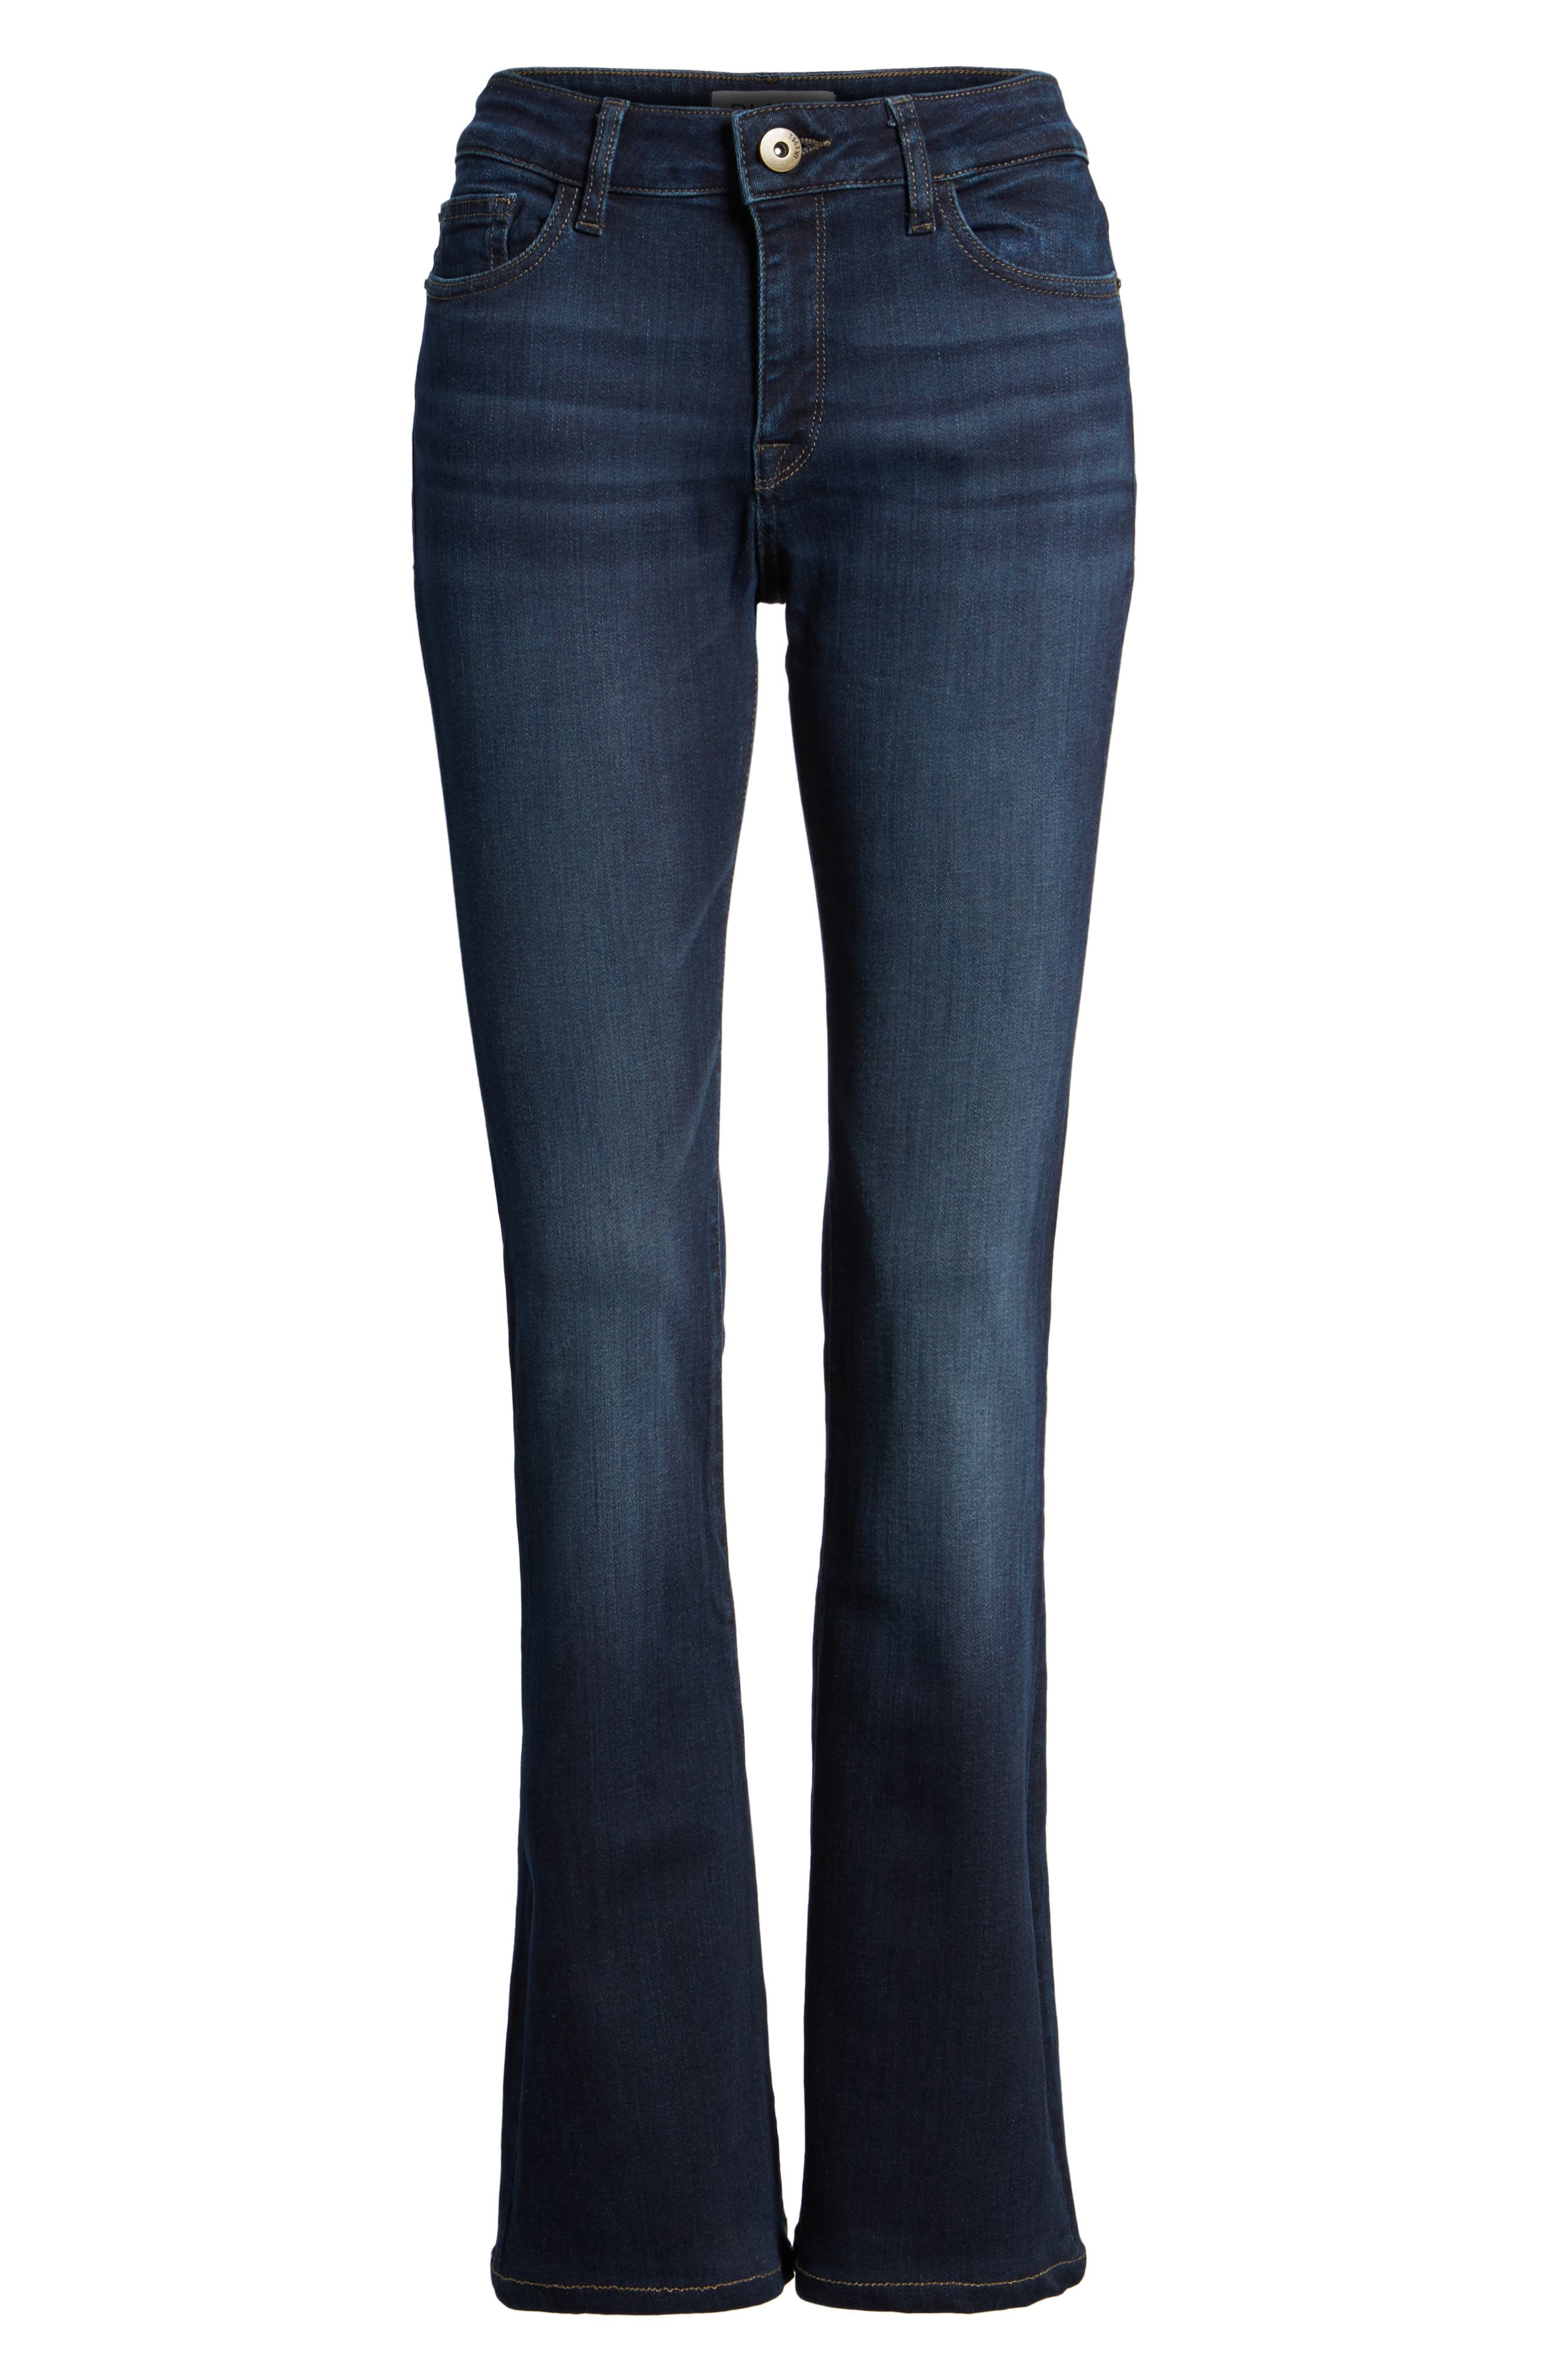 'Bridget 33' Bootcut Jeans,                         Main,                         color, PEAK